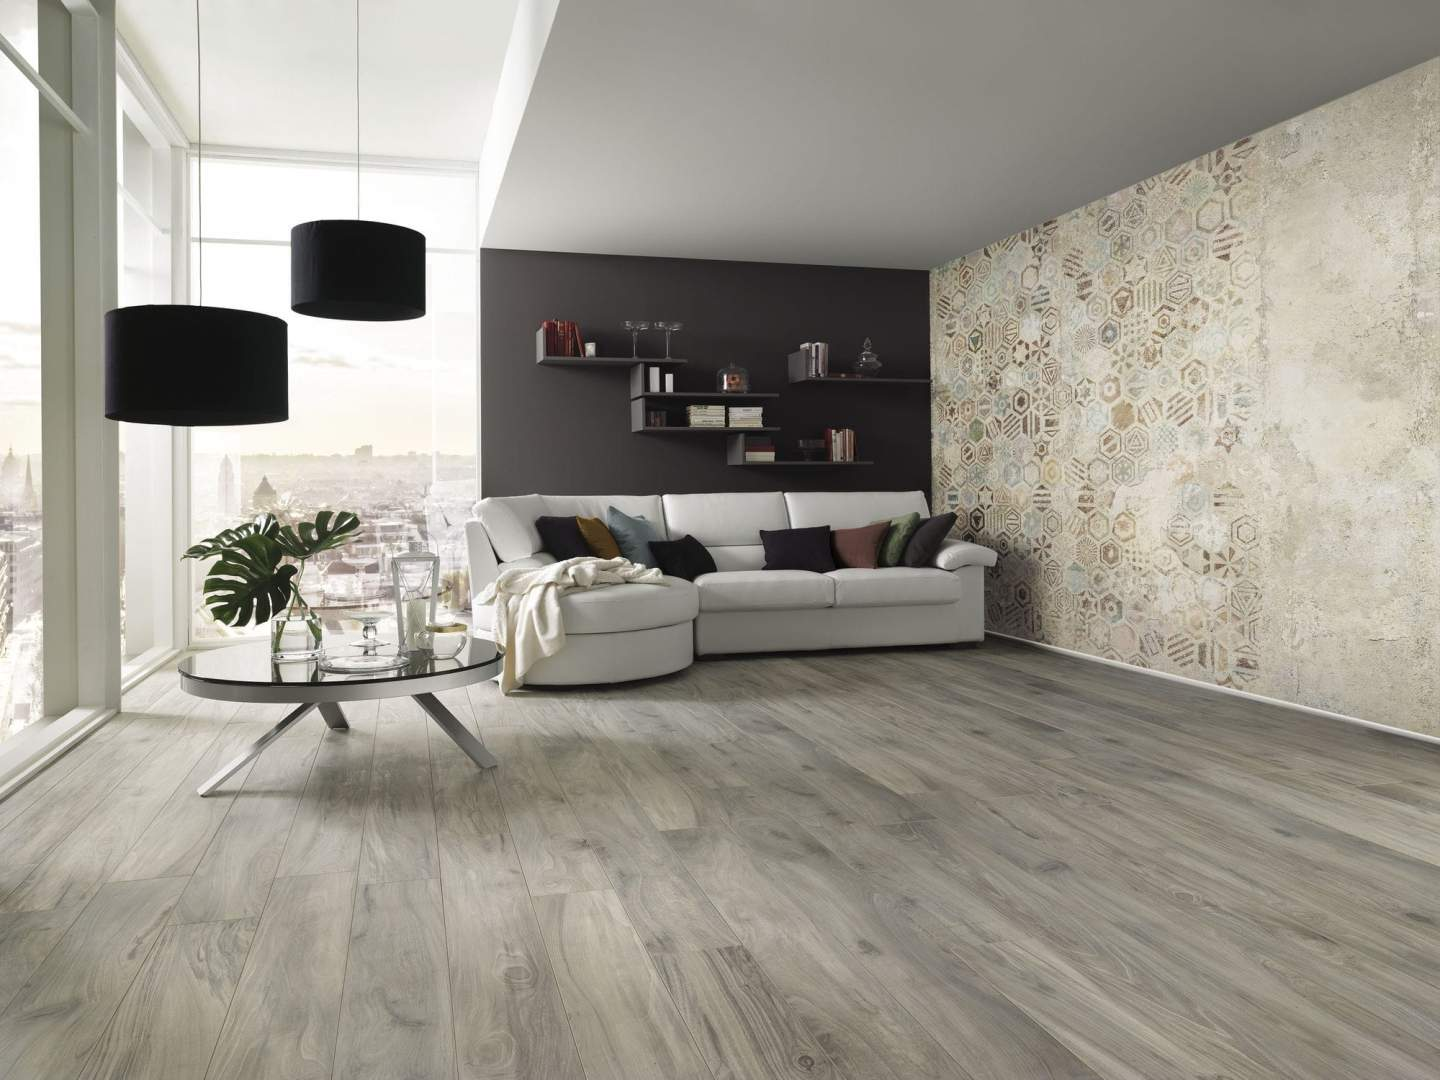 The Best Large Plank Wood Flooring Tiles in Ireland...